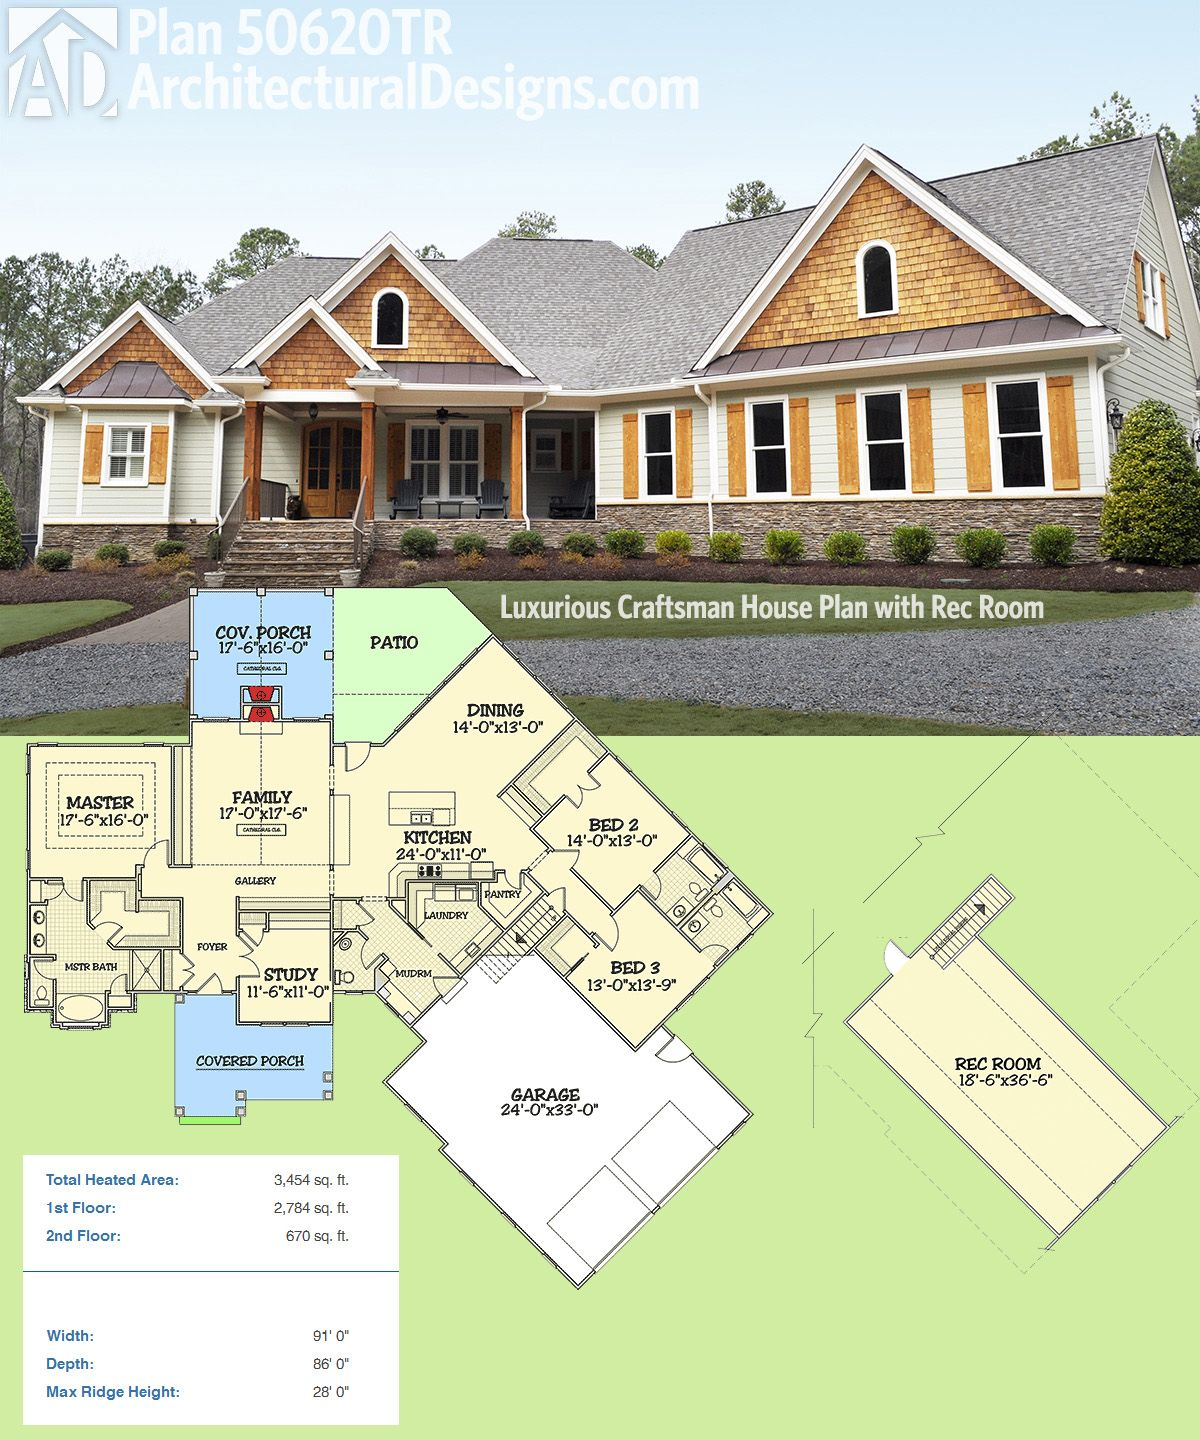 Plan 50620tr luxurious craftsman house plan with rec room 2700 square foot house plans